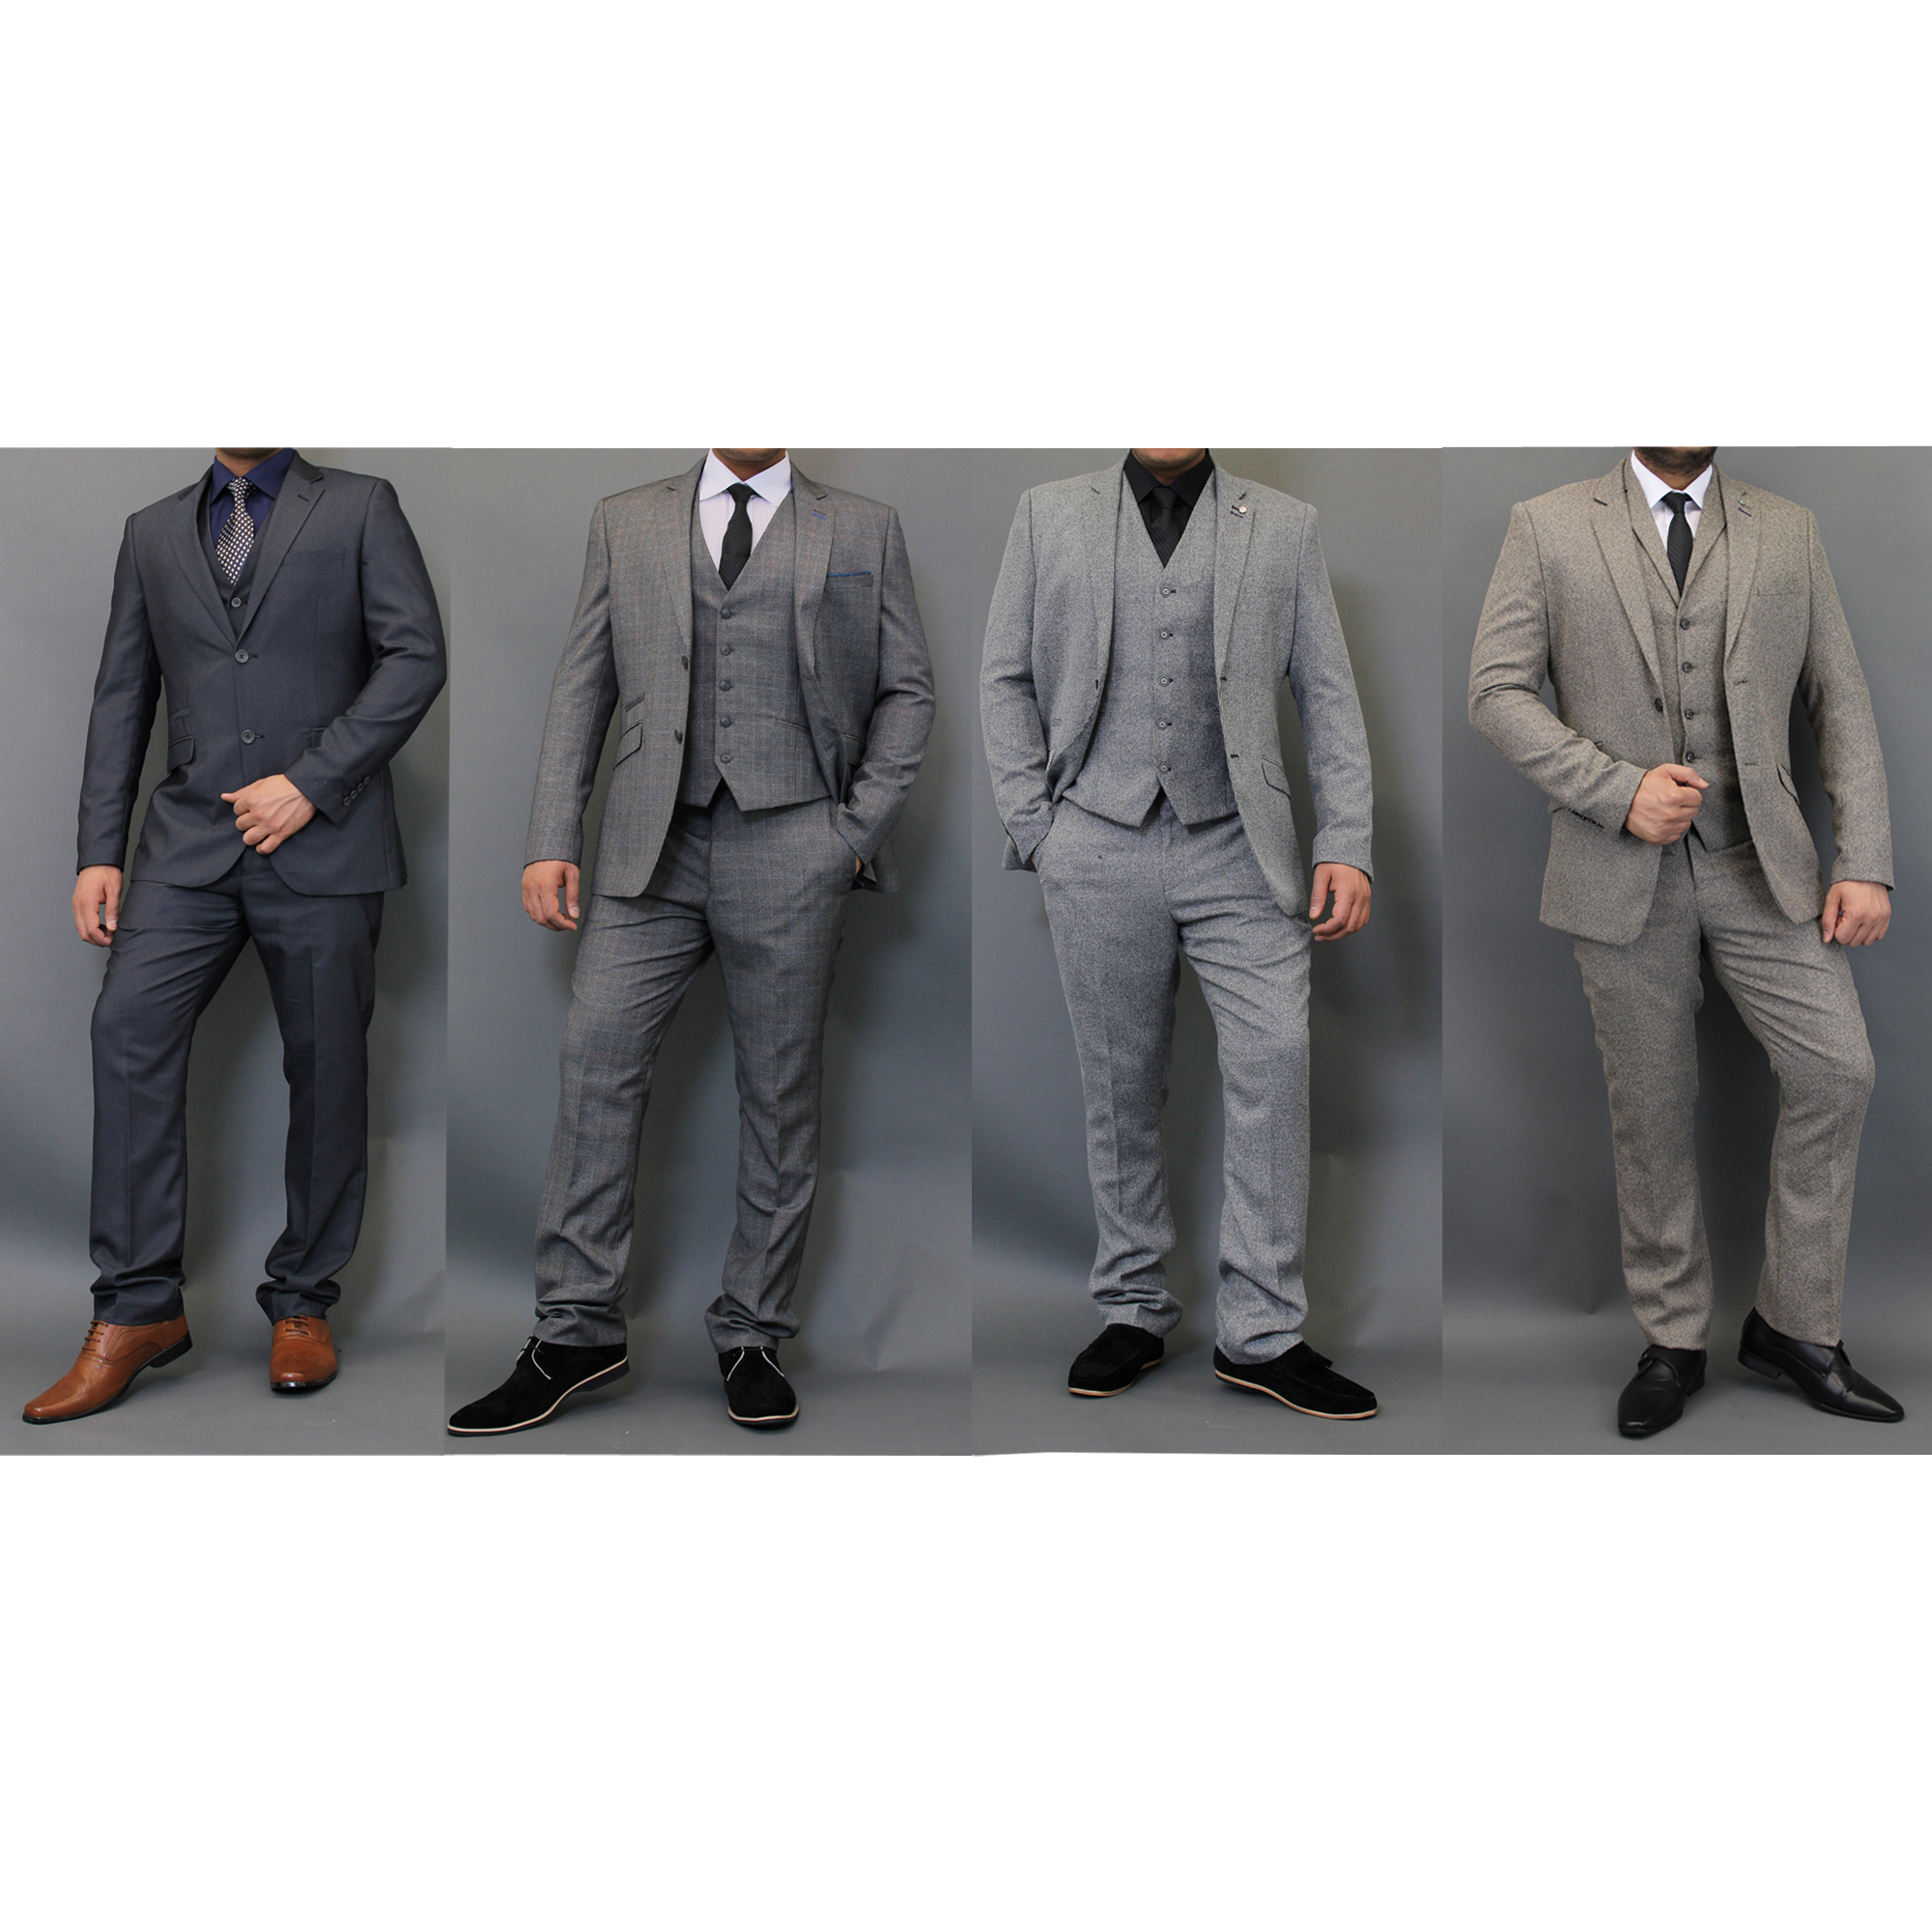 mens tweed checked blazers waistcoats trouser 3 piece suits by cavani ebay. Black Bedroom Furniture Sets. Home Design Ideas